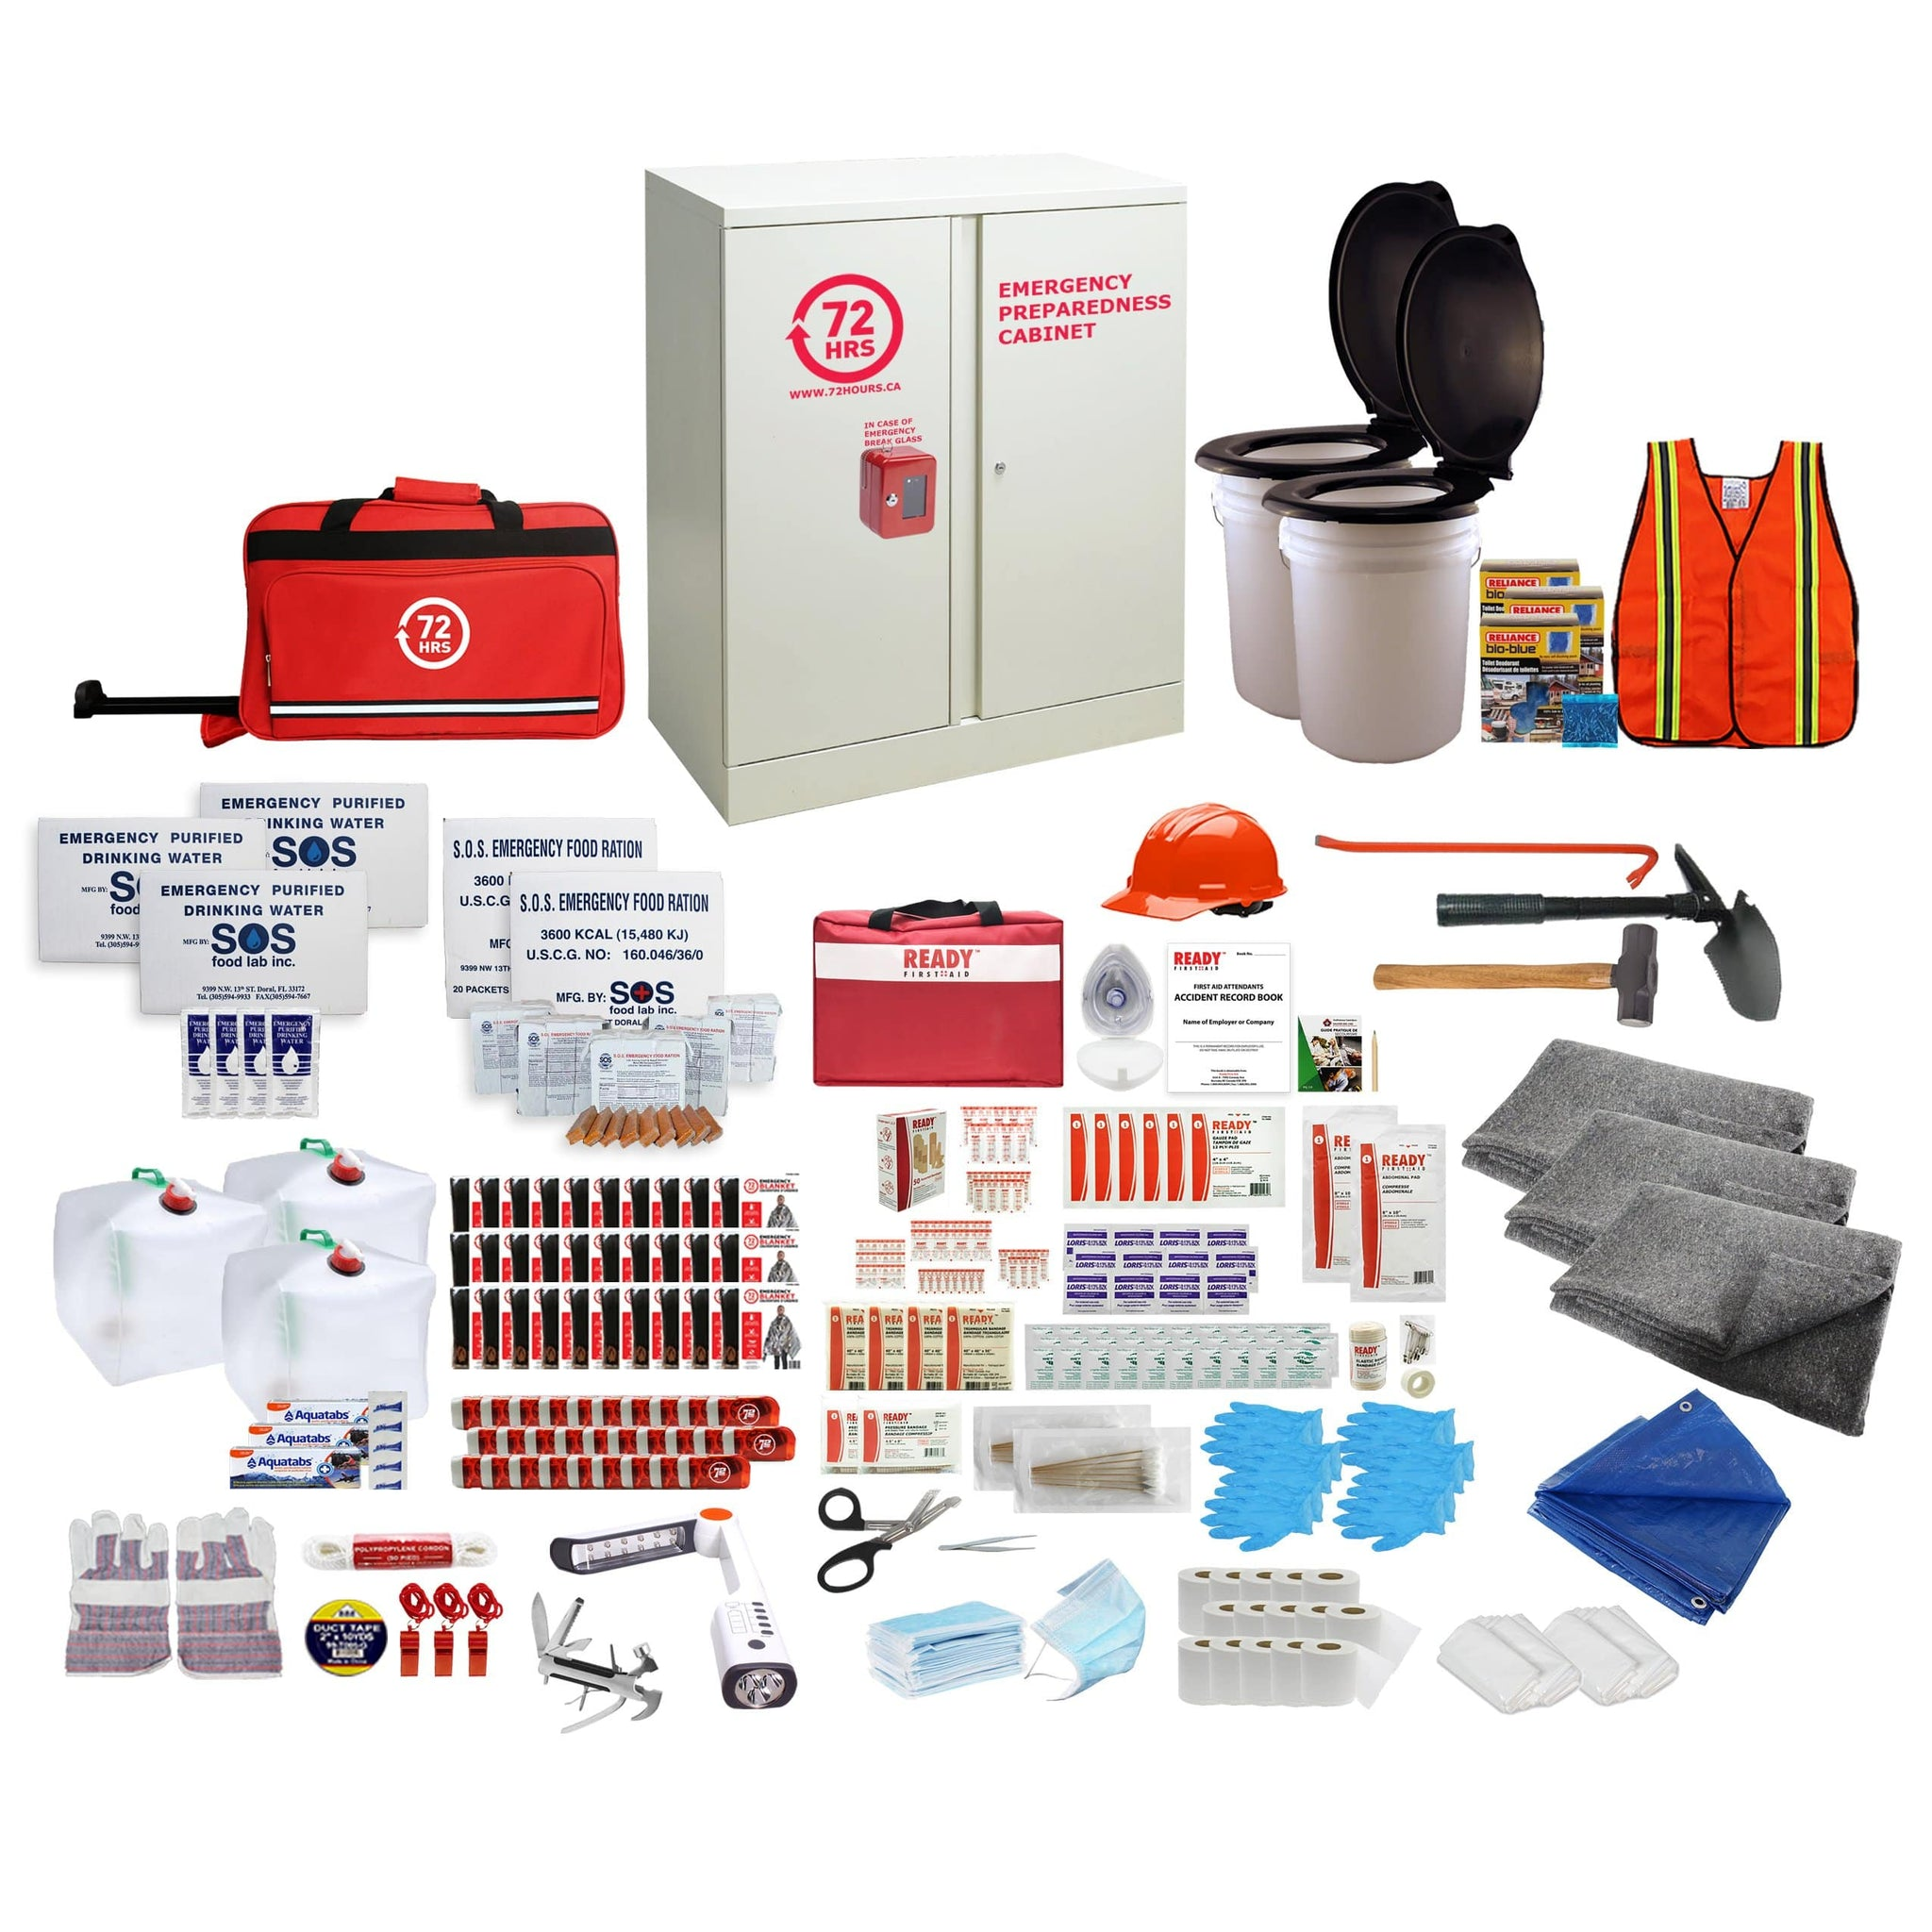 72HRS 30 people emergency cabinet kit with contents laid ouside of cabinet